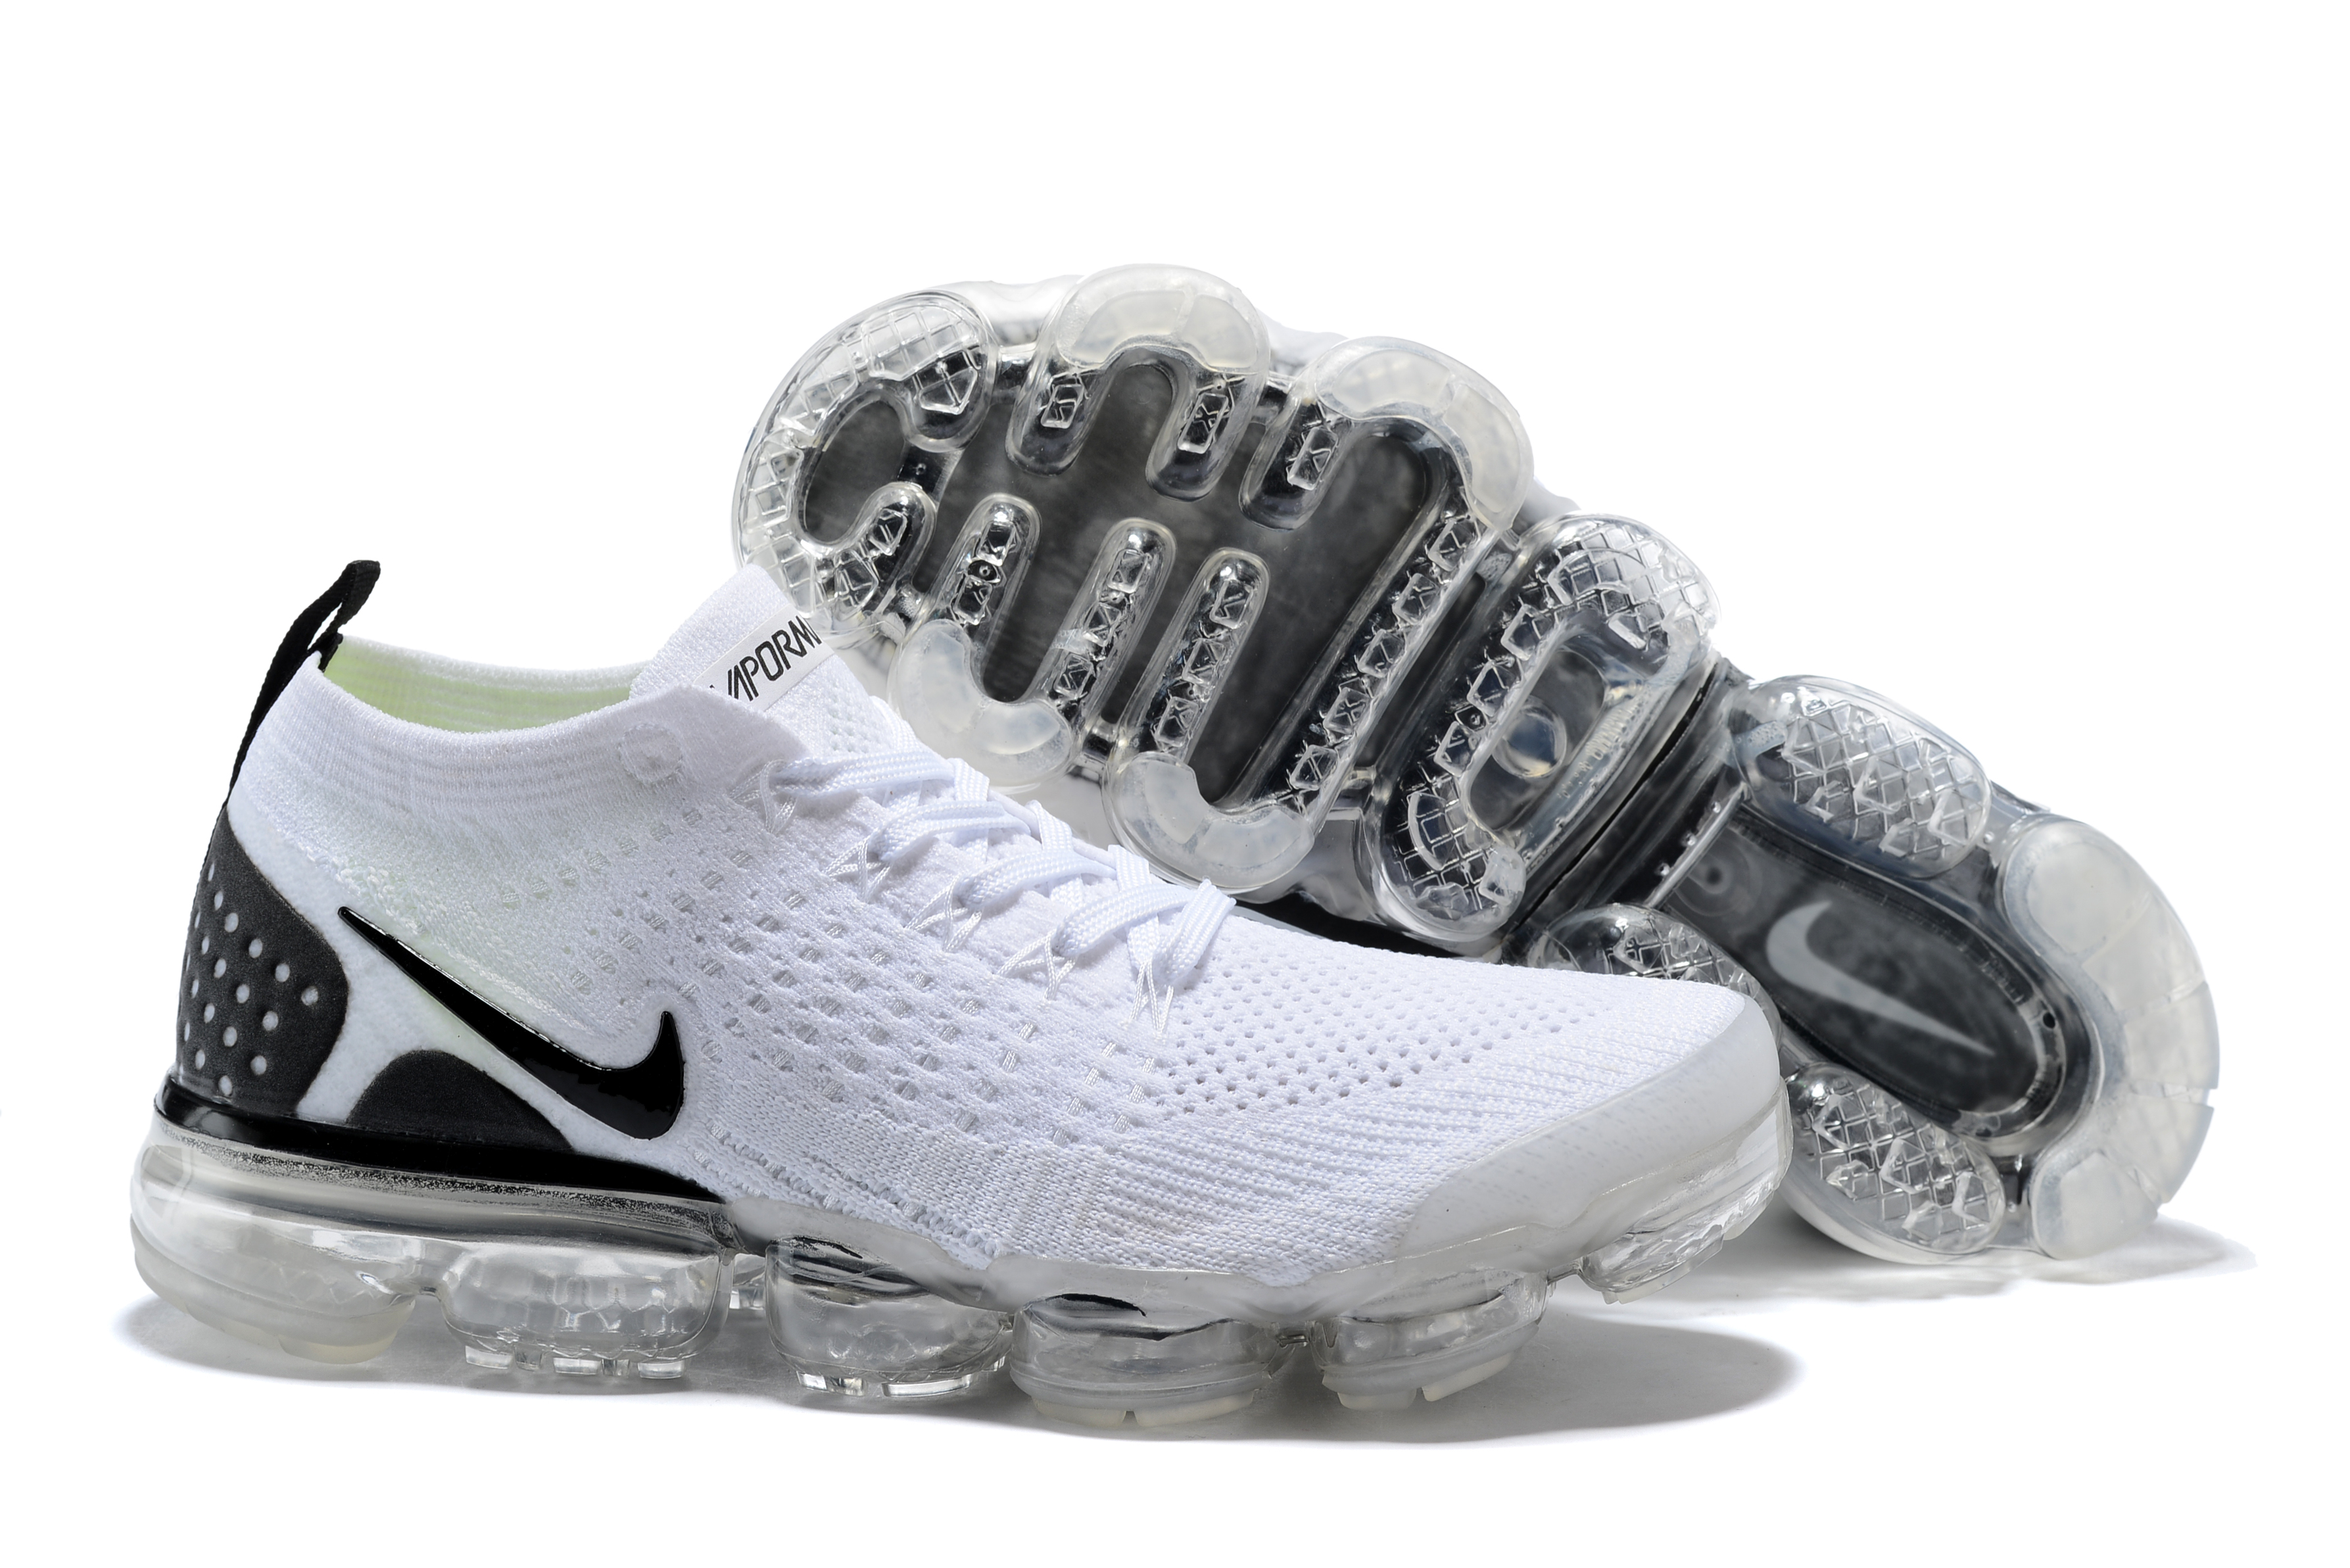 2018 Nike Air VaporMax II White Black Shoes